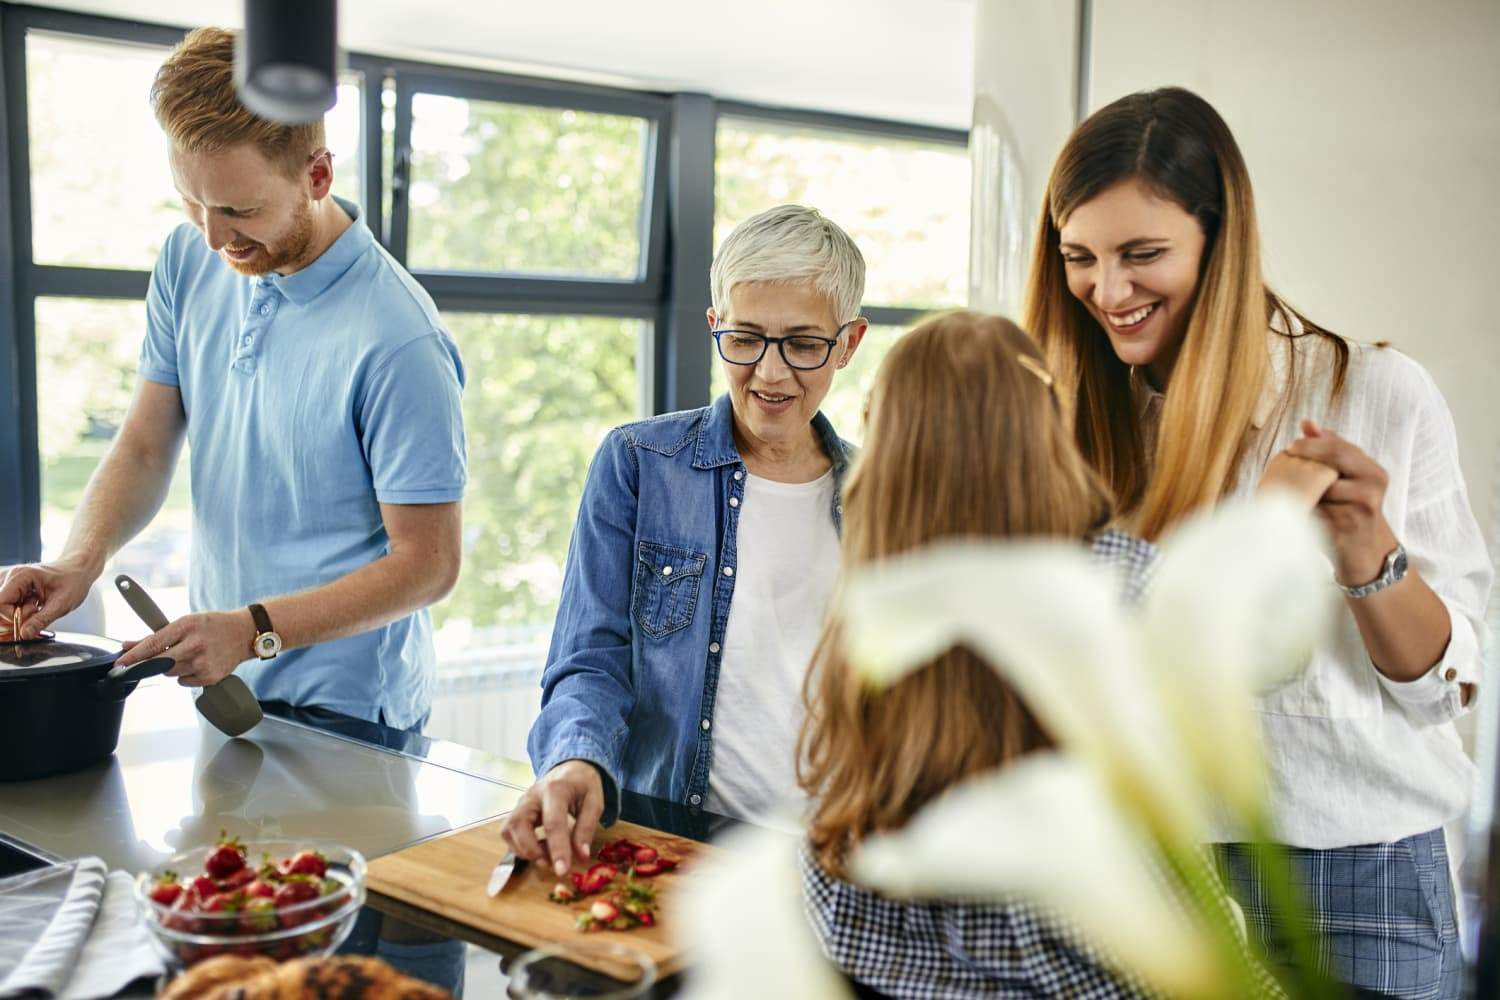 10 More Cleaning Tips from German Grandmothers